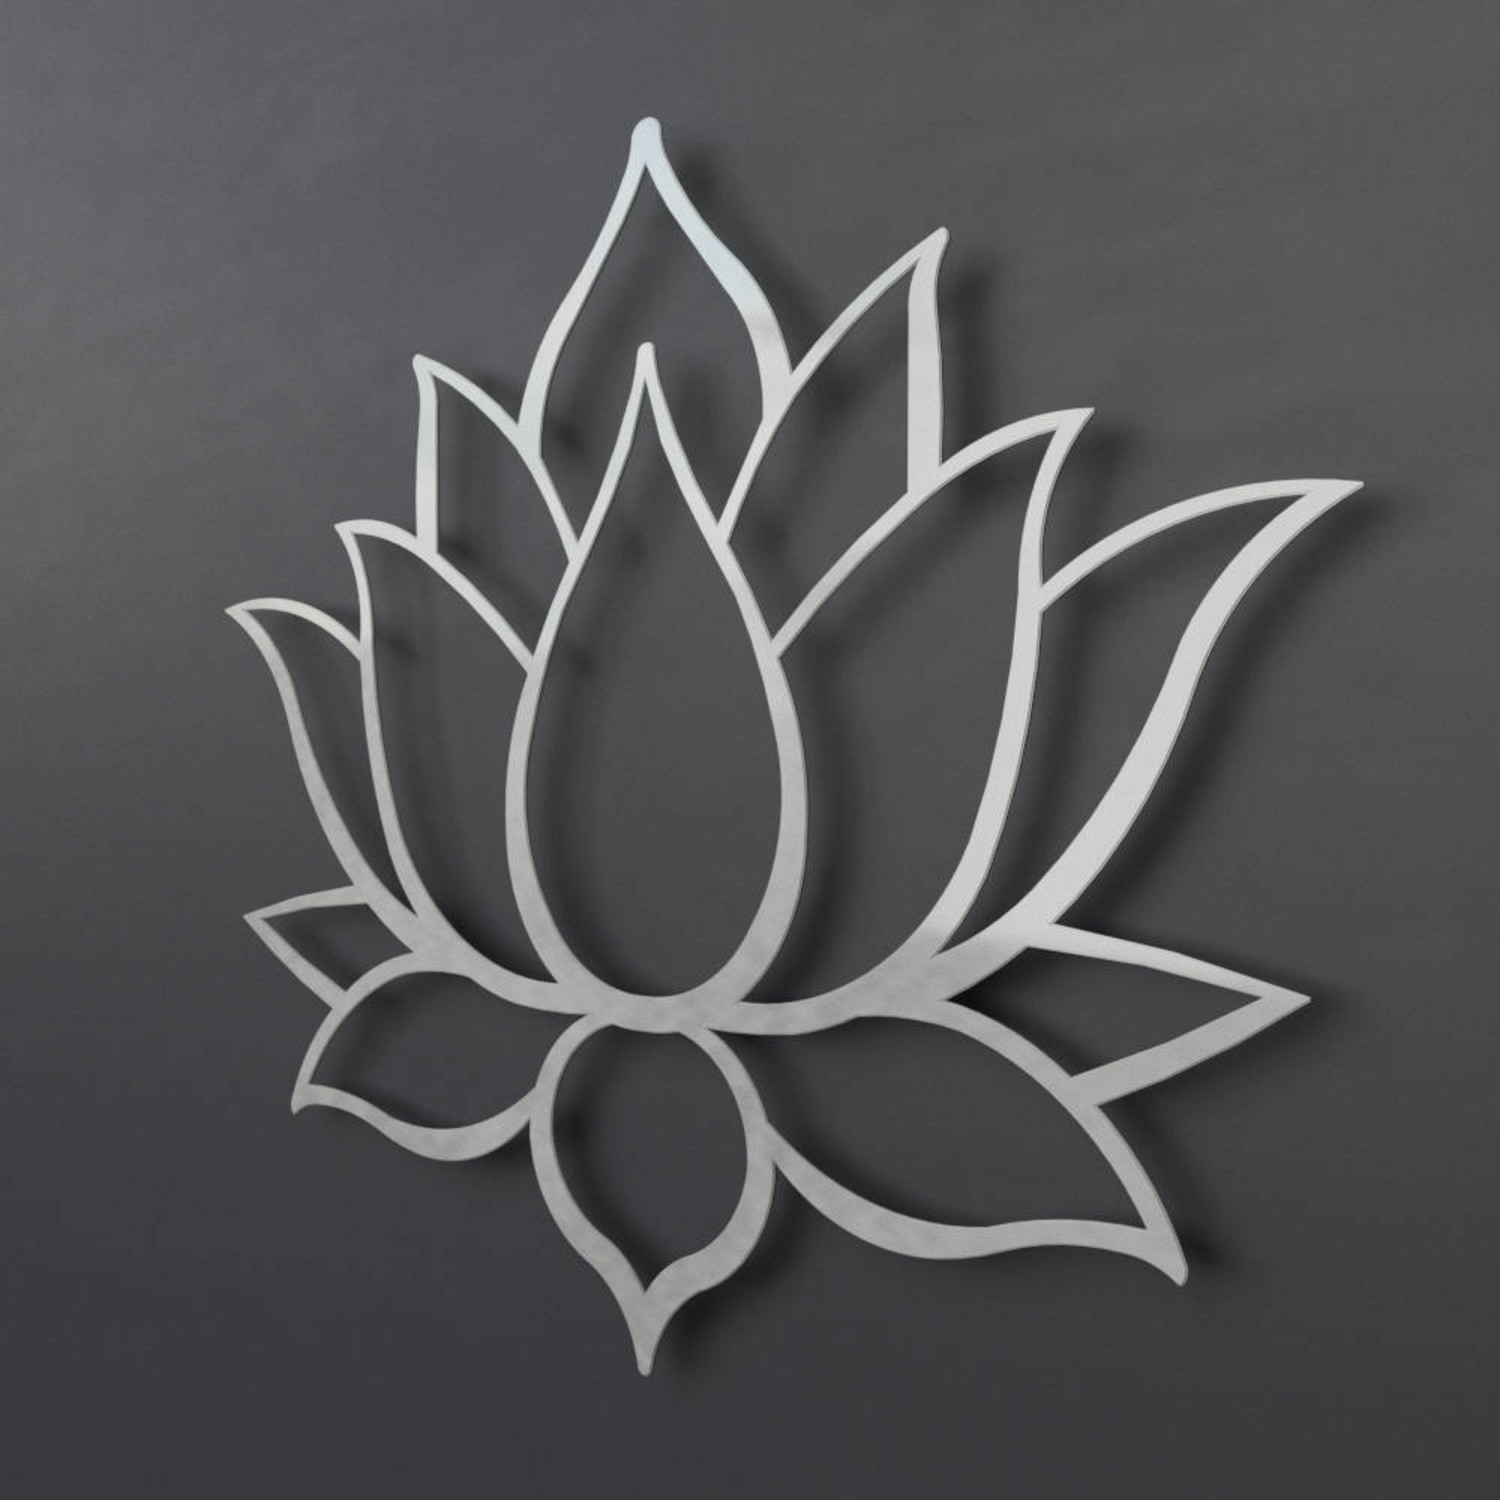 Lotus Flower 3d Metal Wall Art 24w X 205h X 025d Arte And